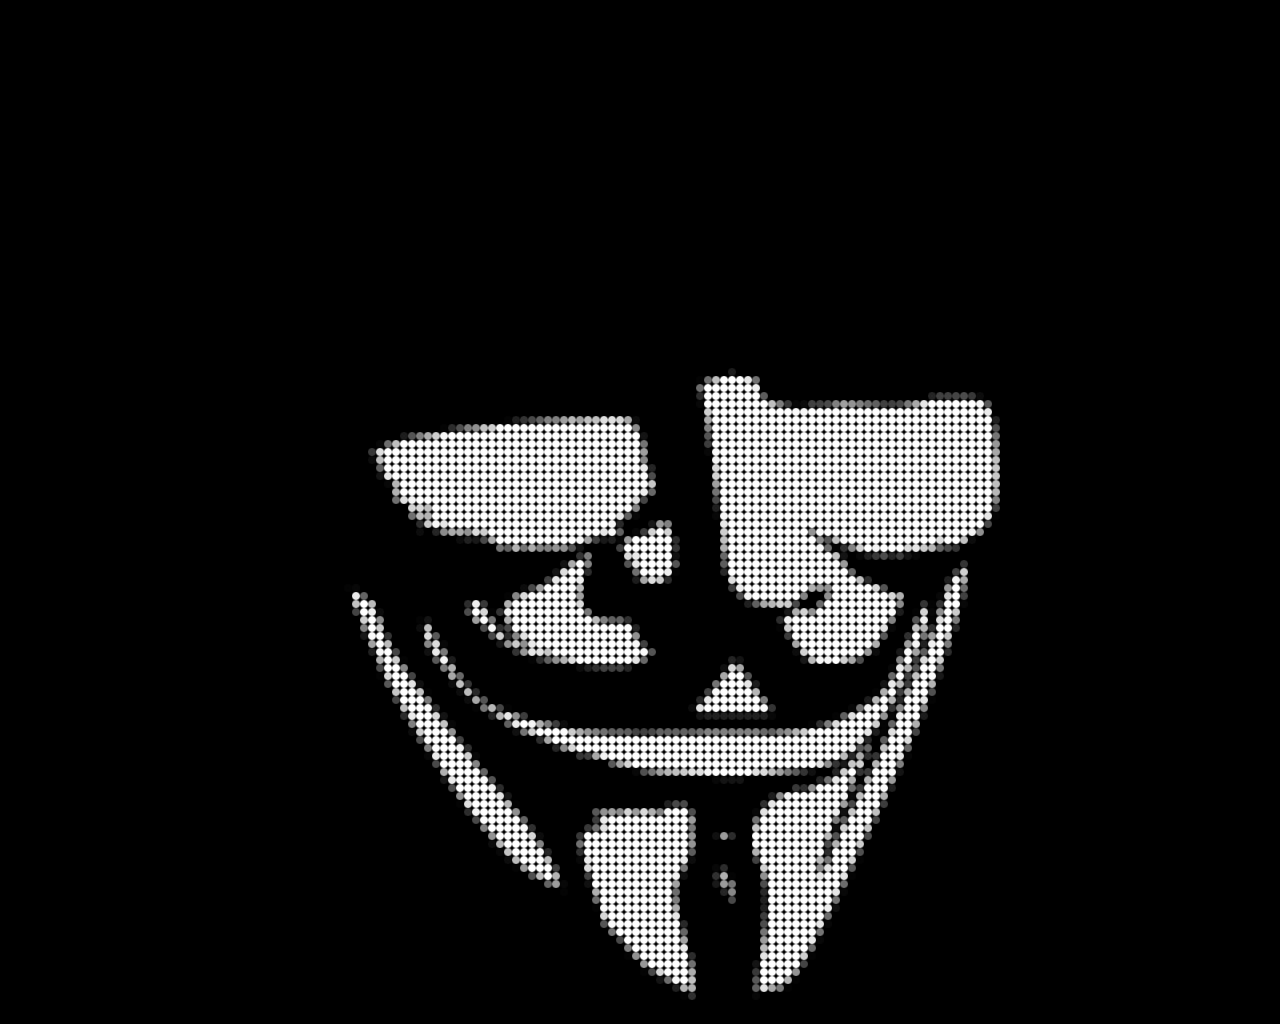 For Vendetta 19382 Hd Wallpapers in Movies   Imagescicom 1280x1024